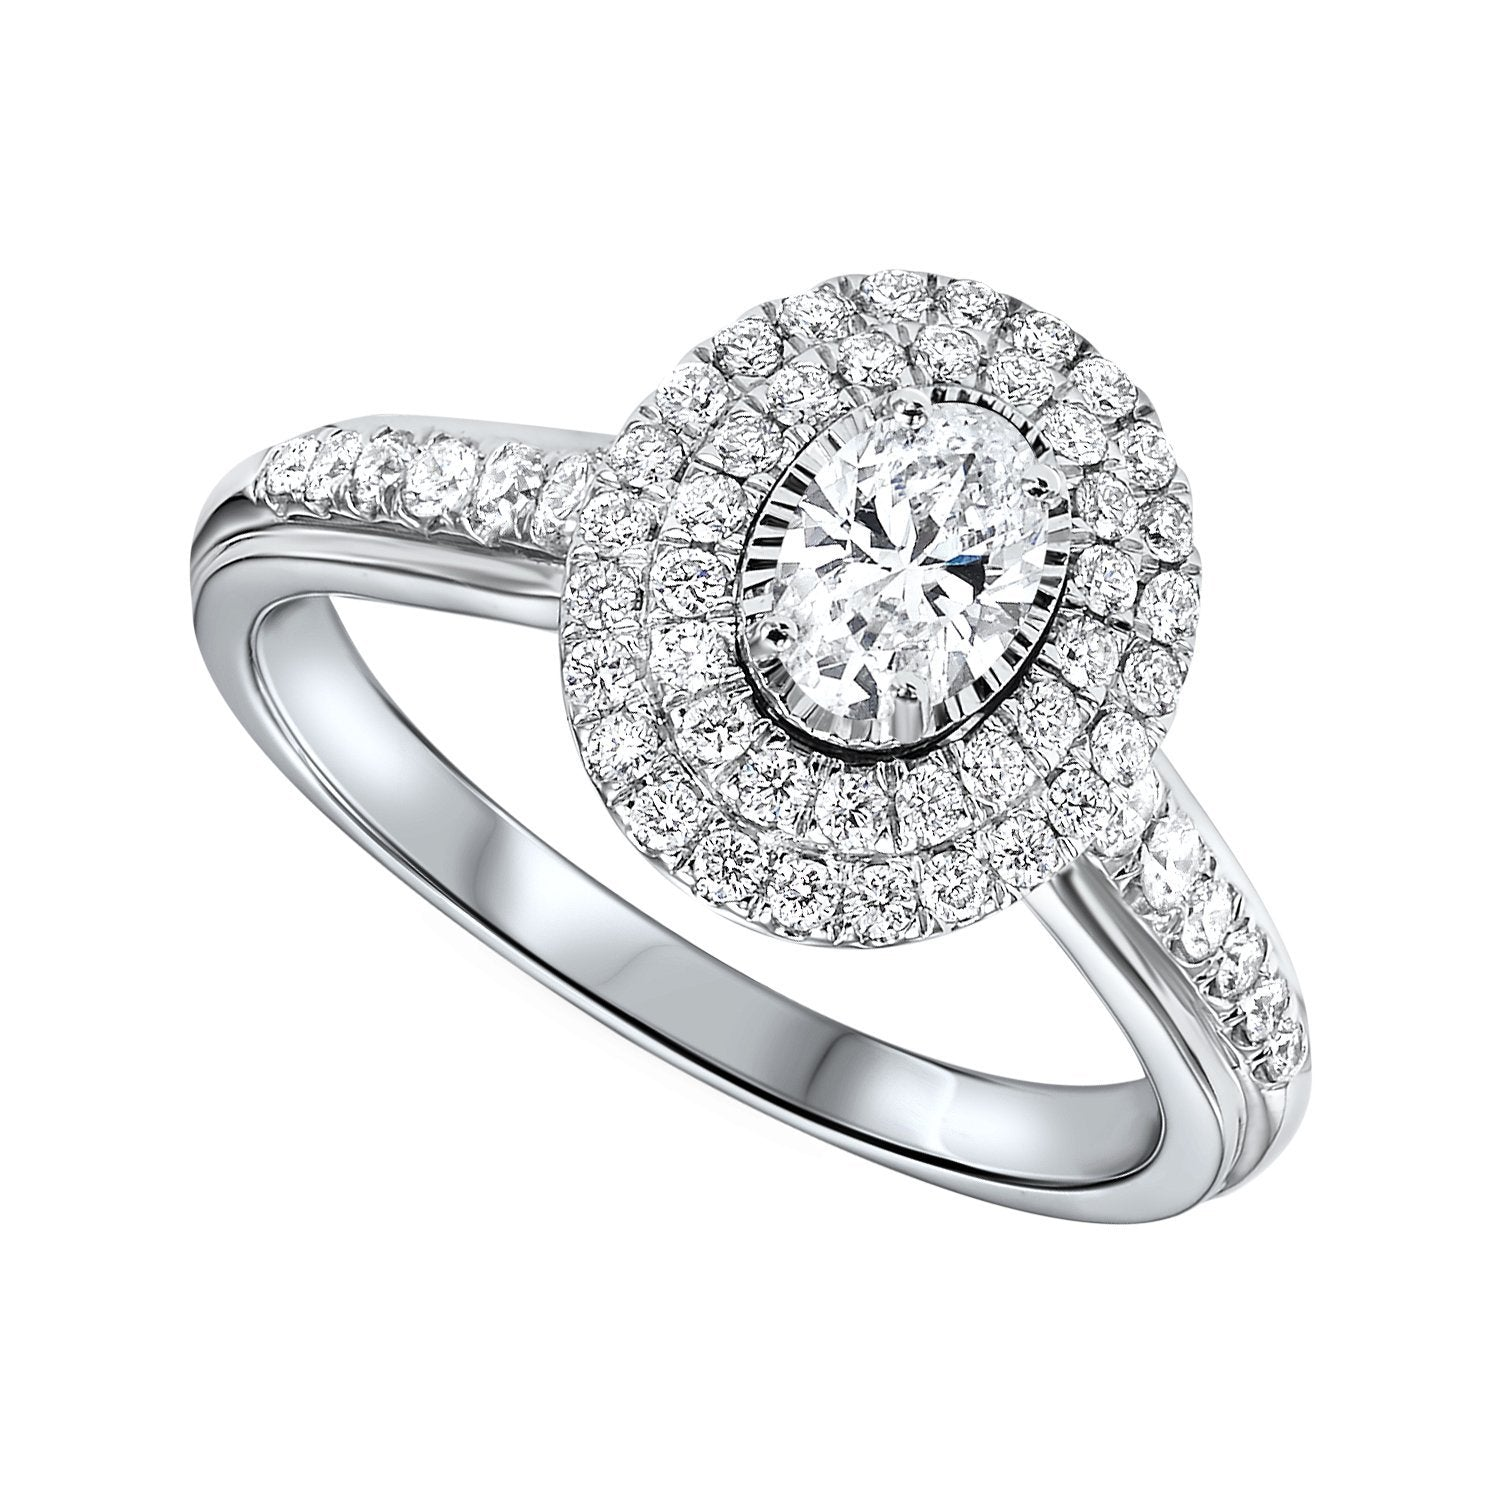 4827c6a7d4624 14K White Gold 3/4cttw Oval True Reflections Double Halo Engagement Ring